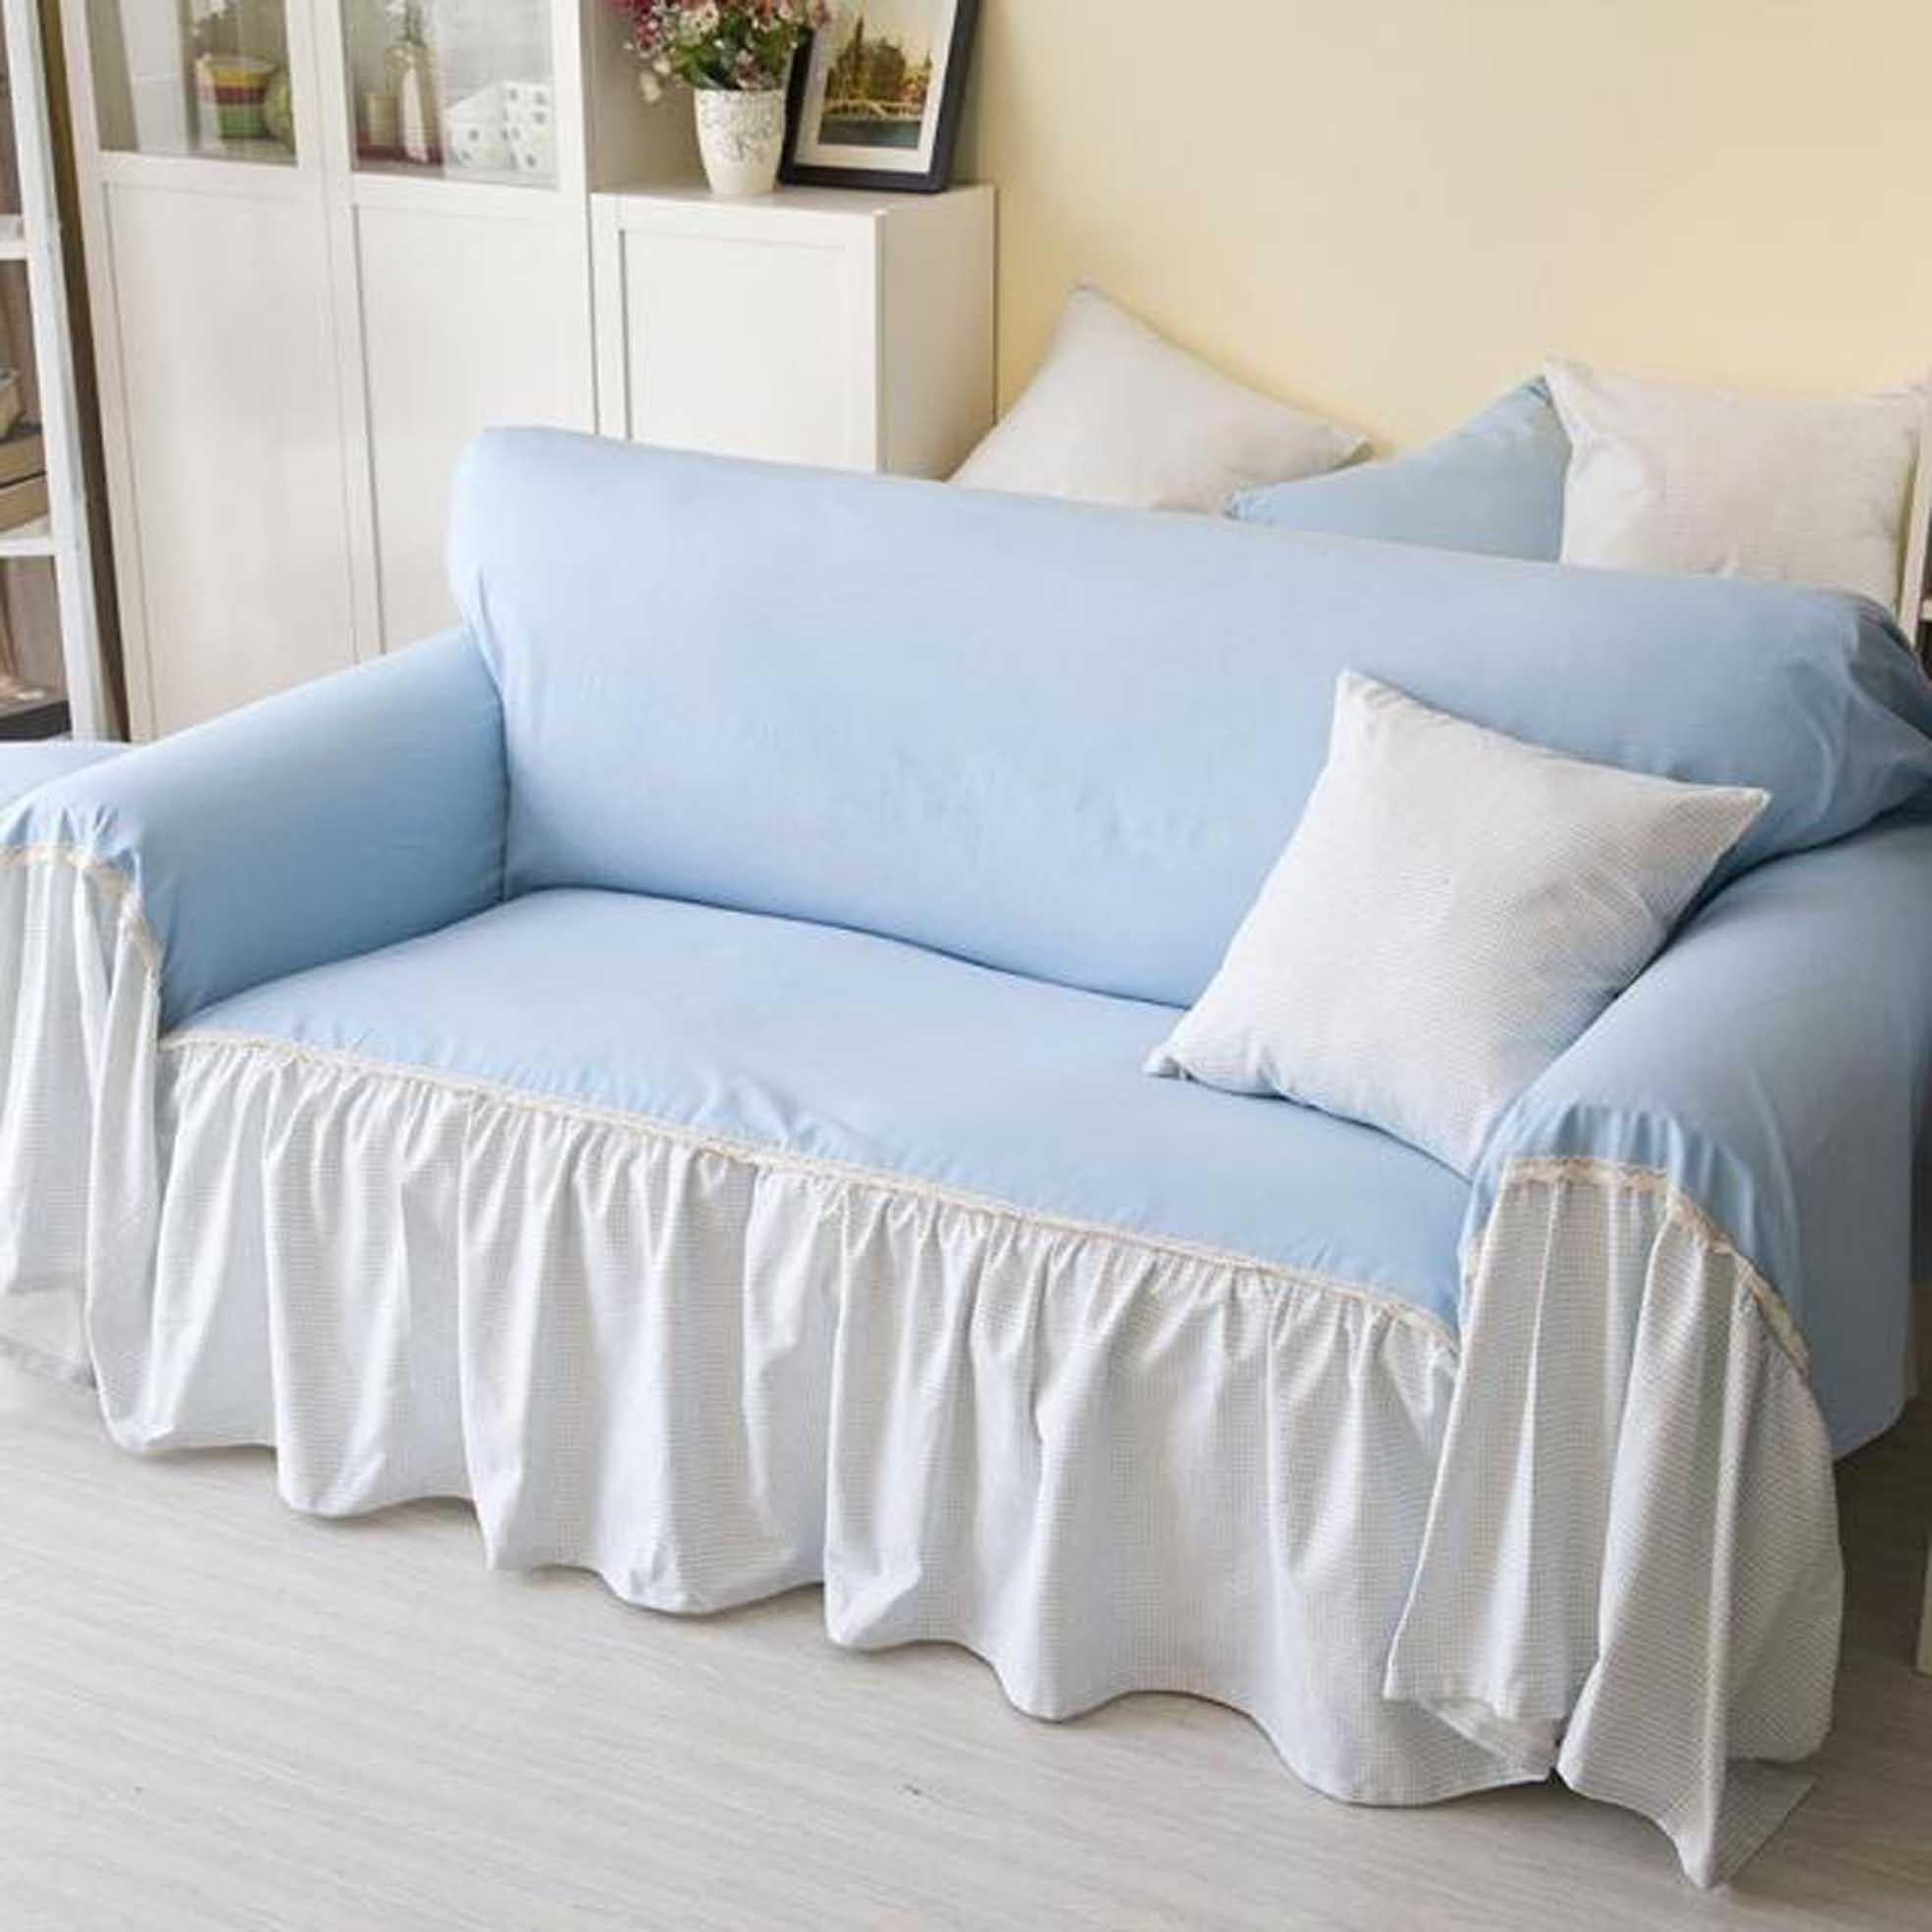 Furniture: Update Your Cozy Living Room With Cheap Sofa Covers Pertaining To Covers For Sofas And Chairs (View 9 of 20)